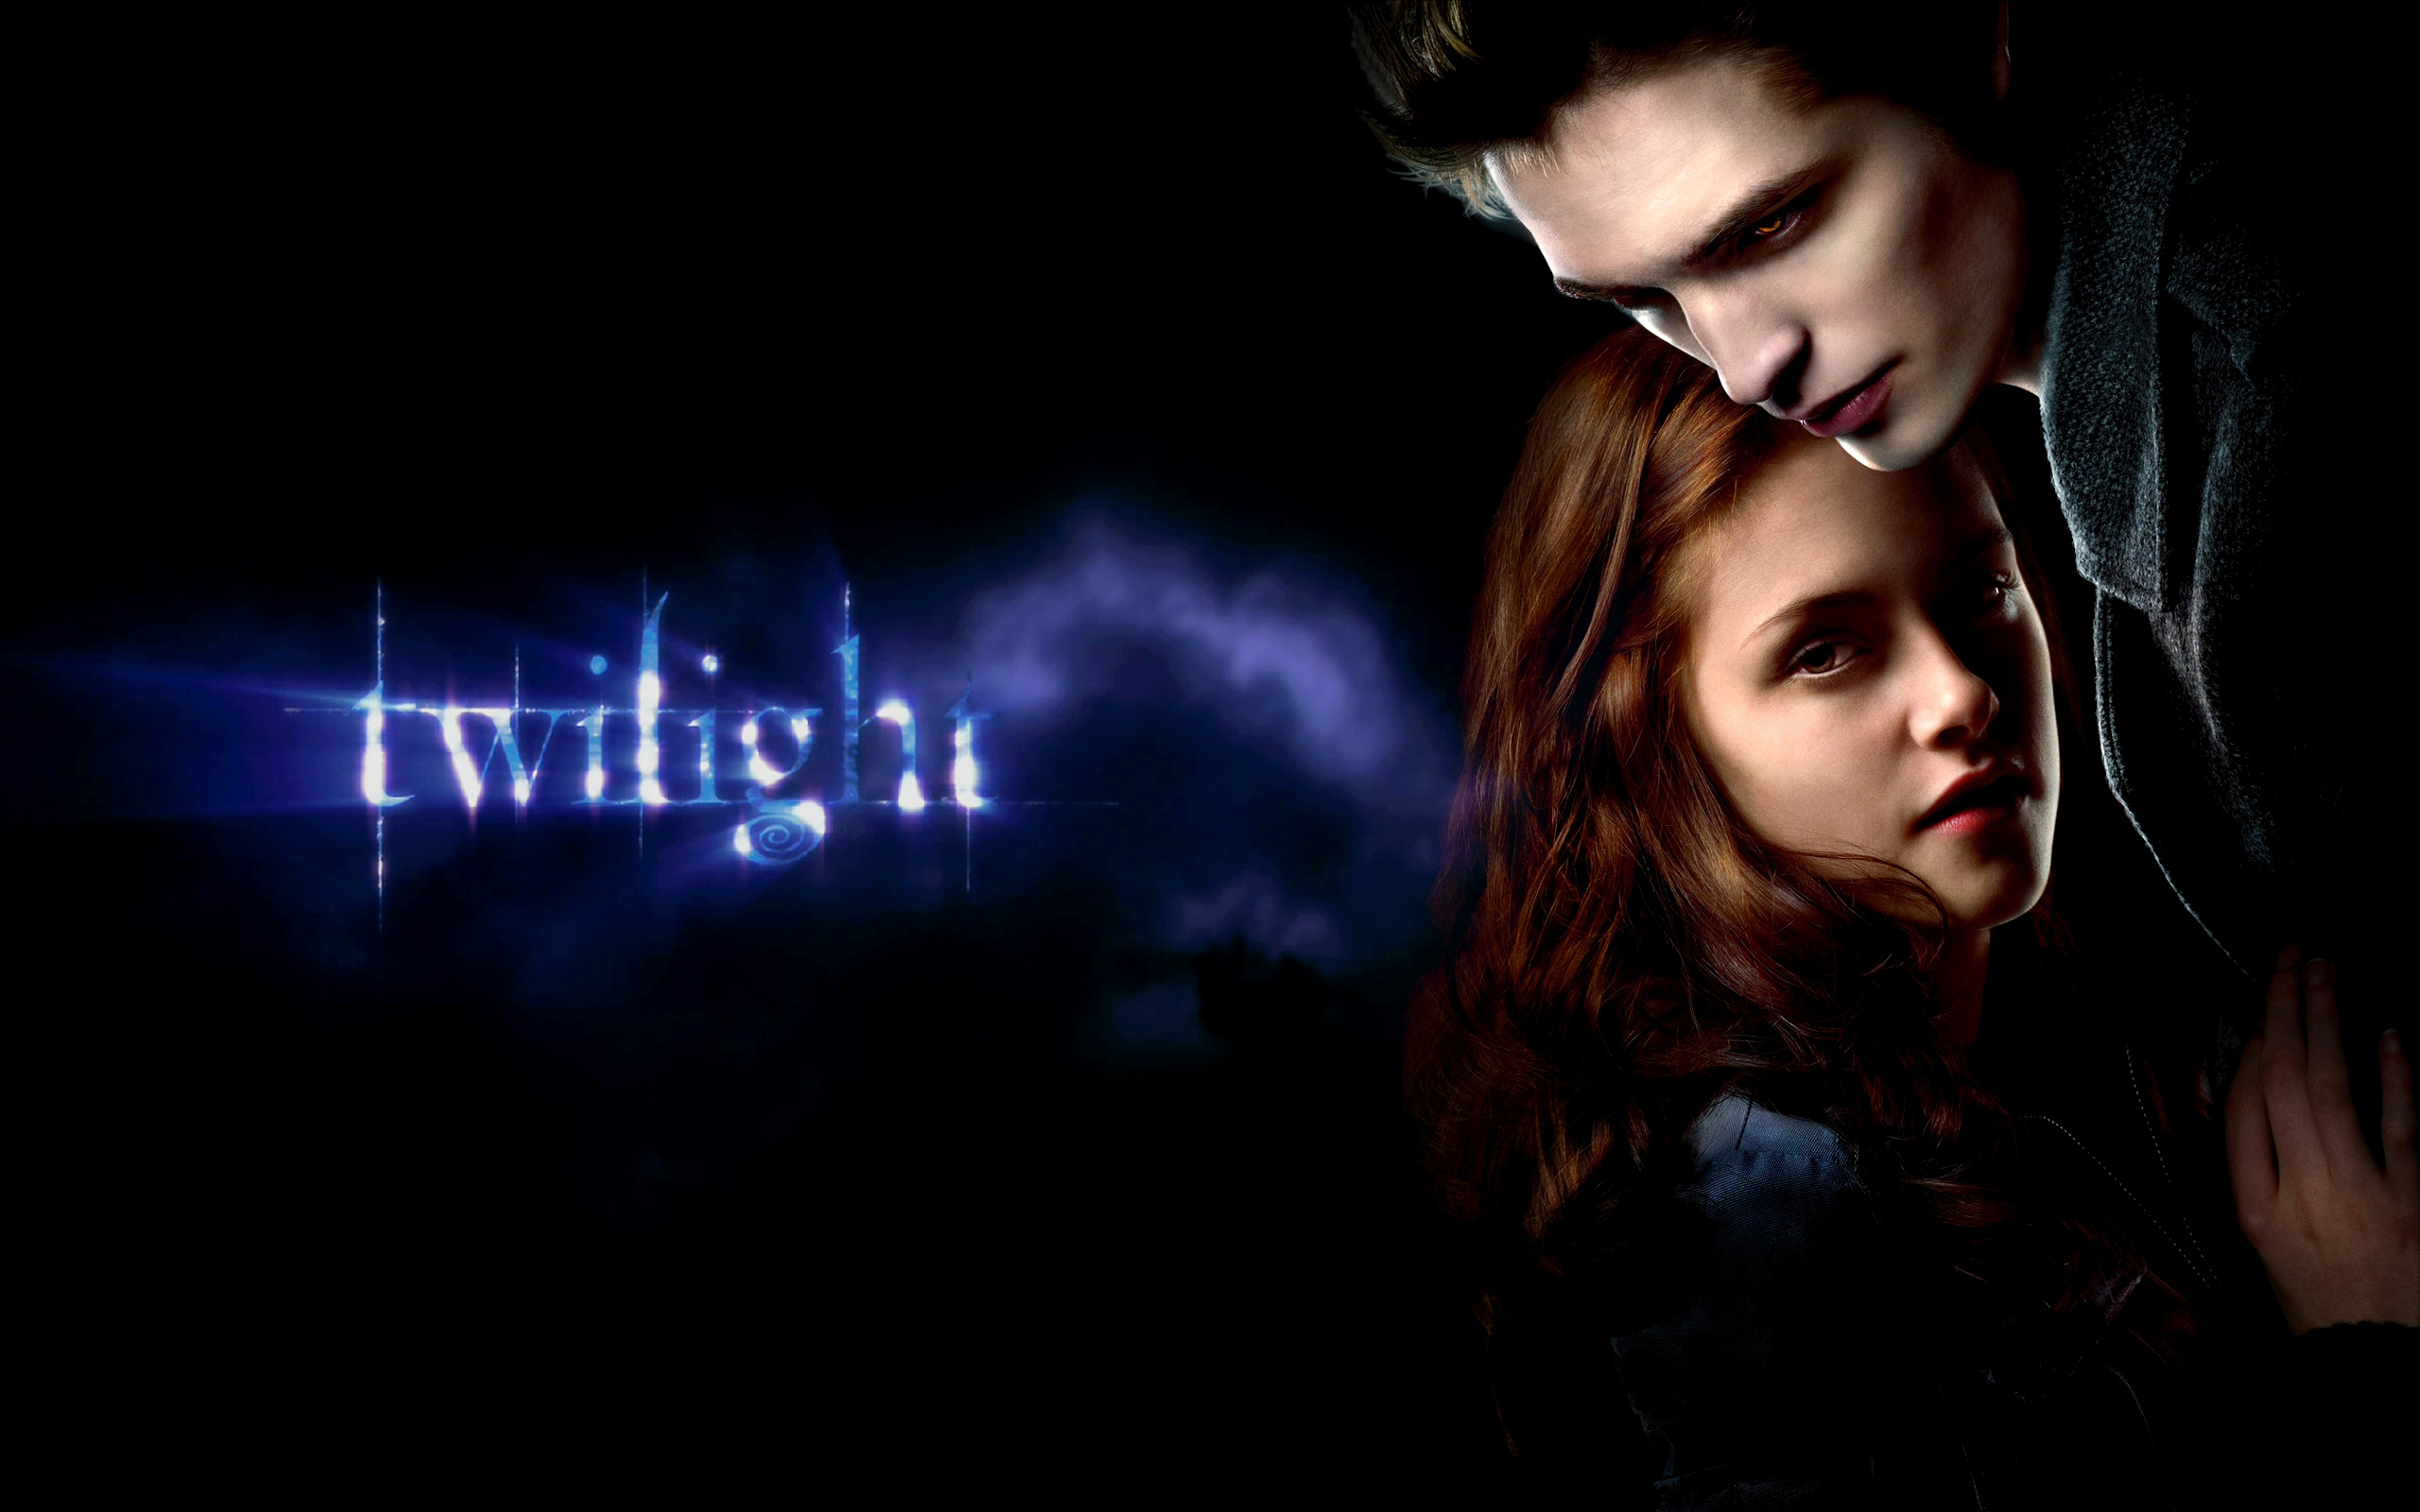 Twilight twilight series wallpaper 27232770 fanpop for Twilight edward photos